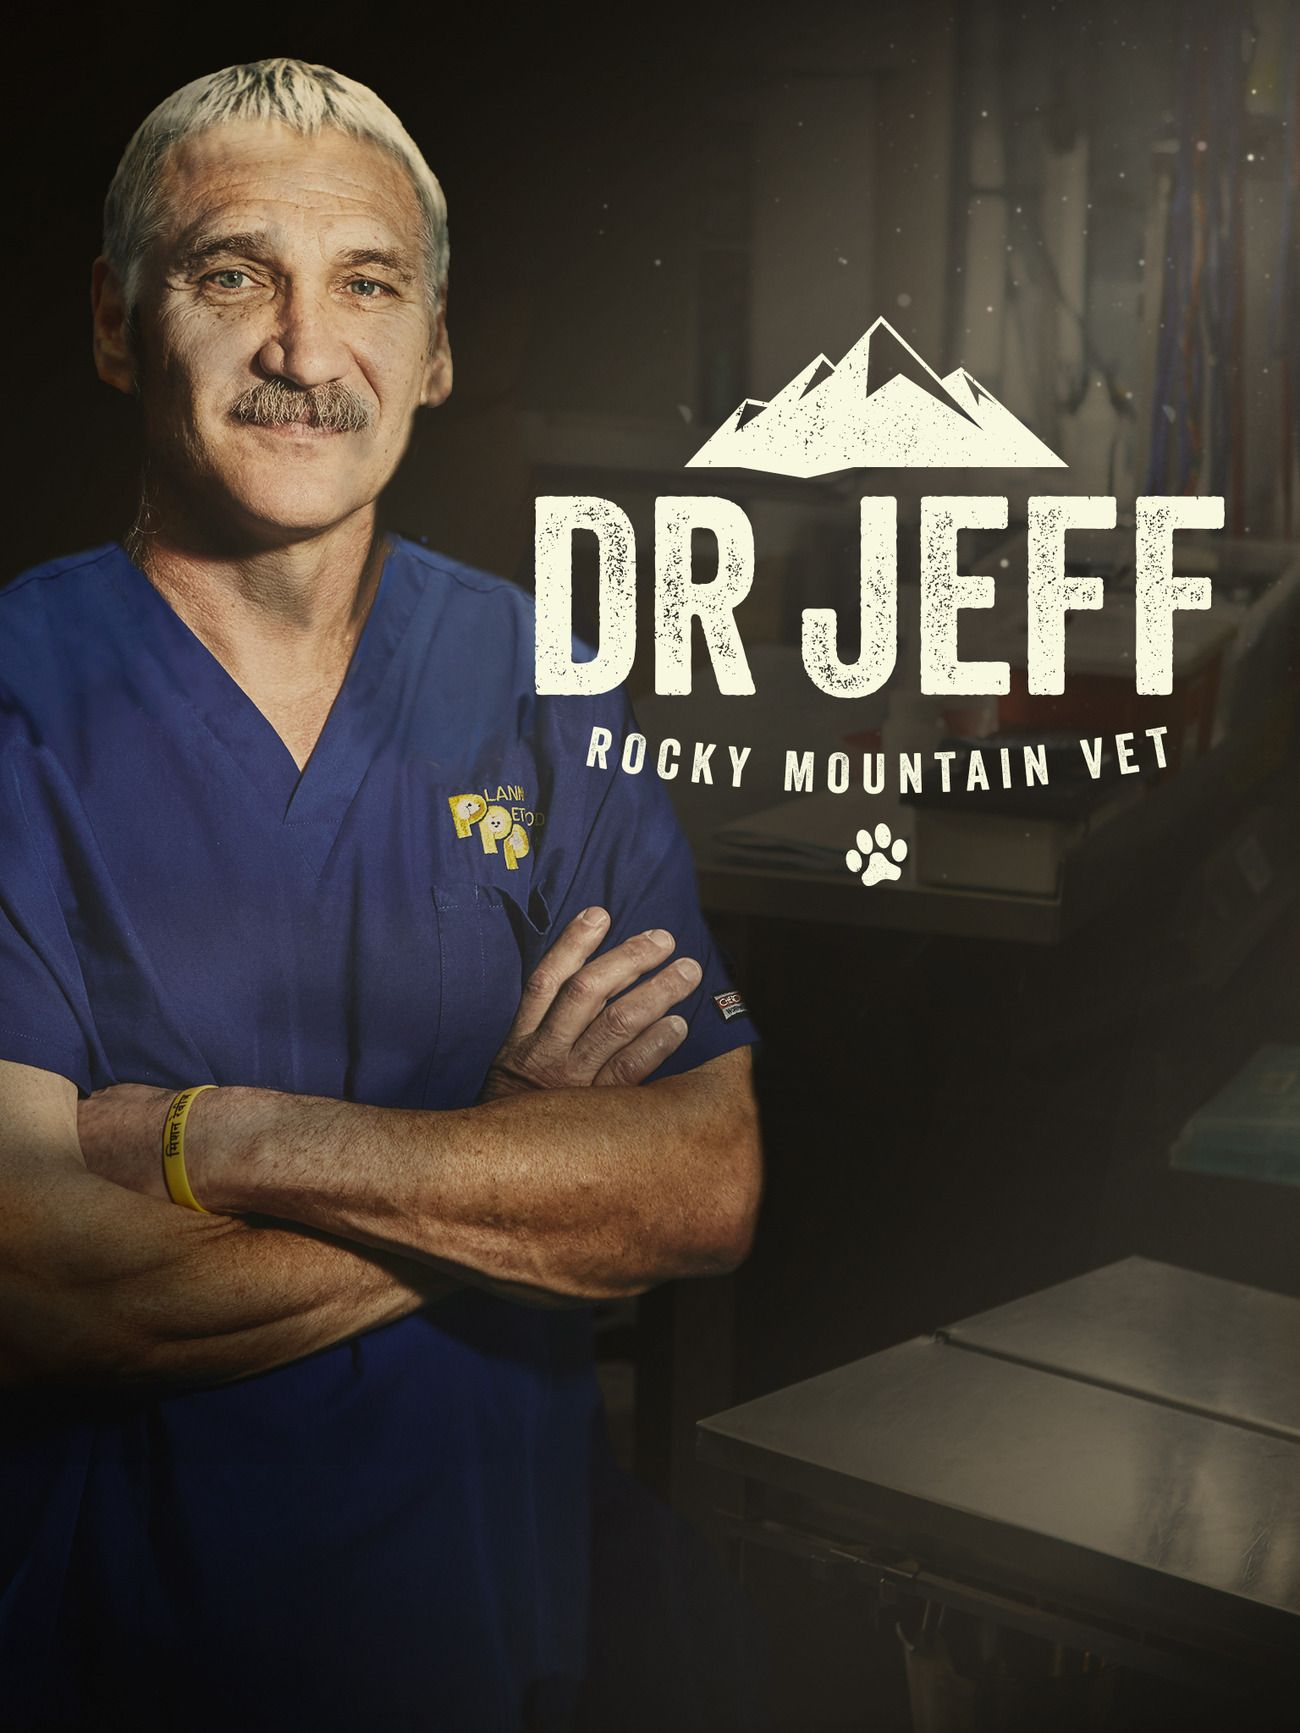 11++ Animal planet dr jeff ideas in 2021